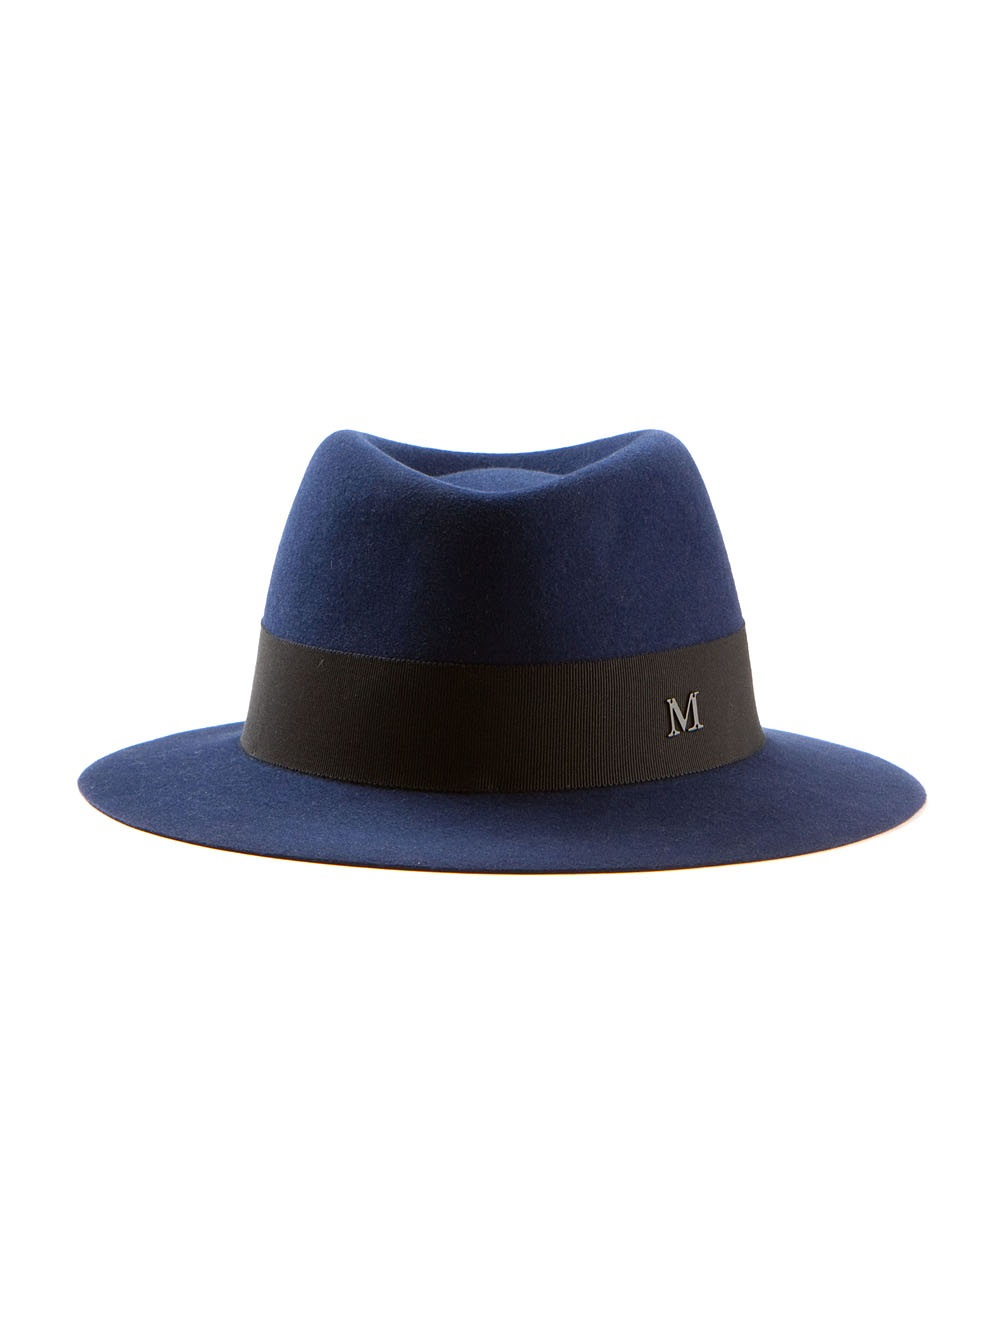 Maison michel andre hat in blue lyst for Maison michel